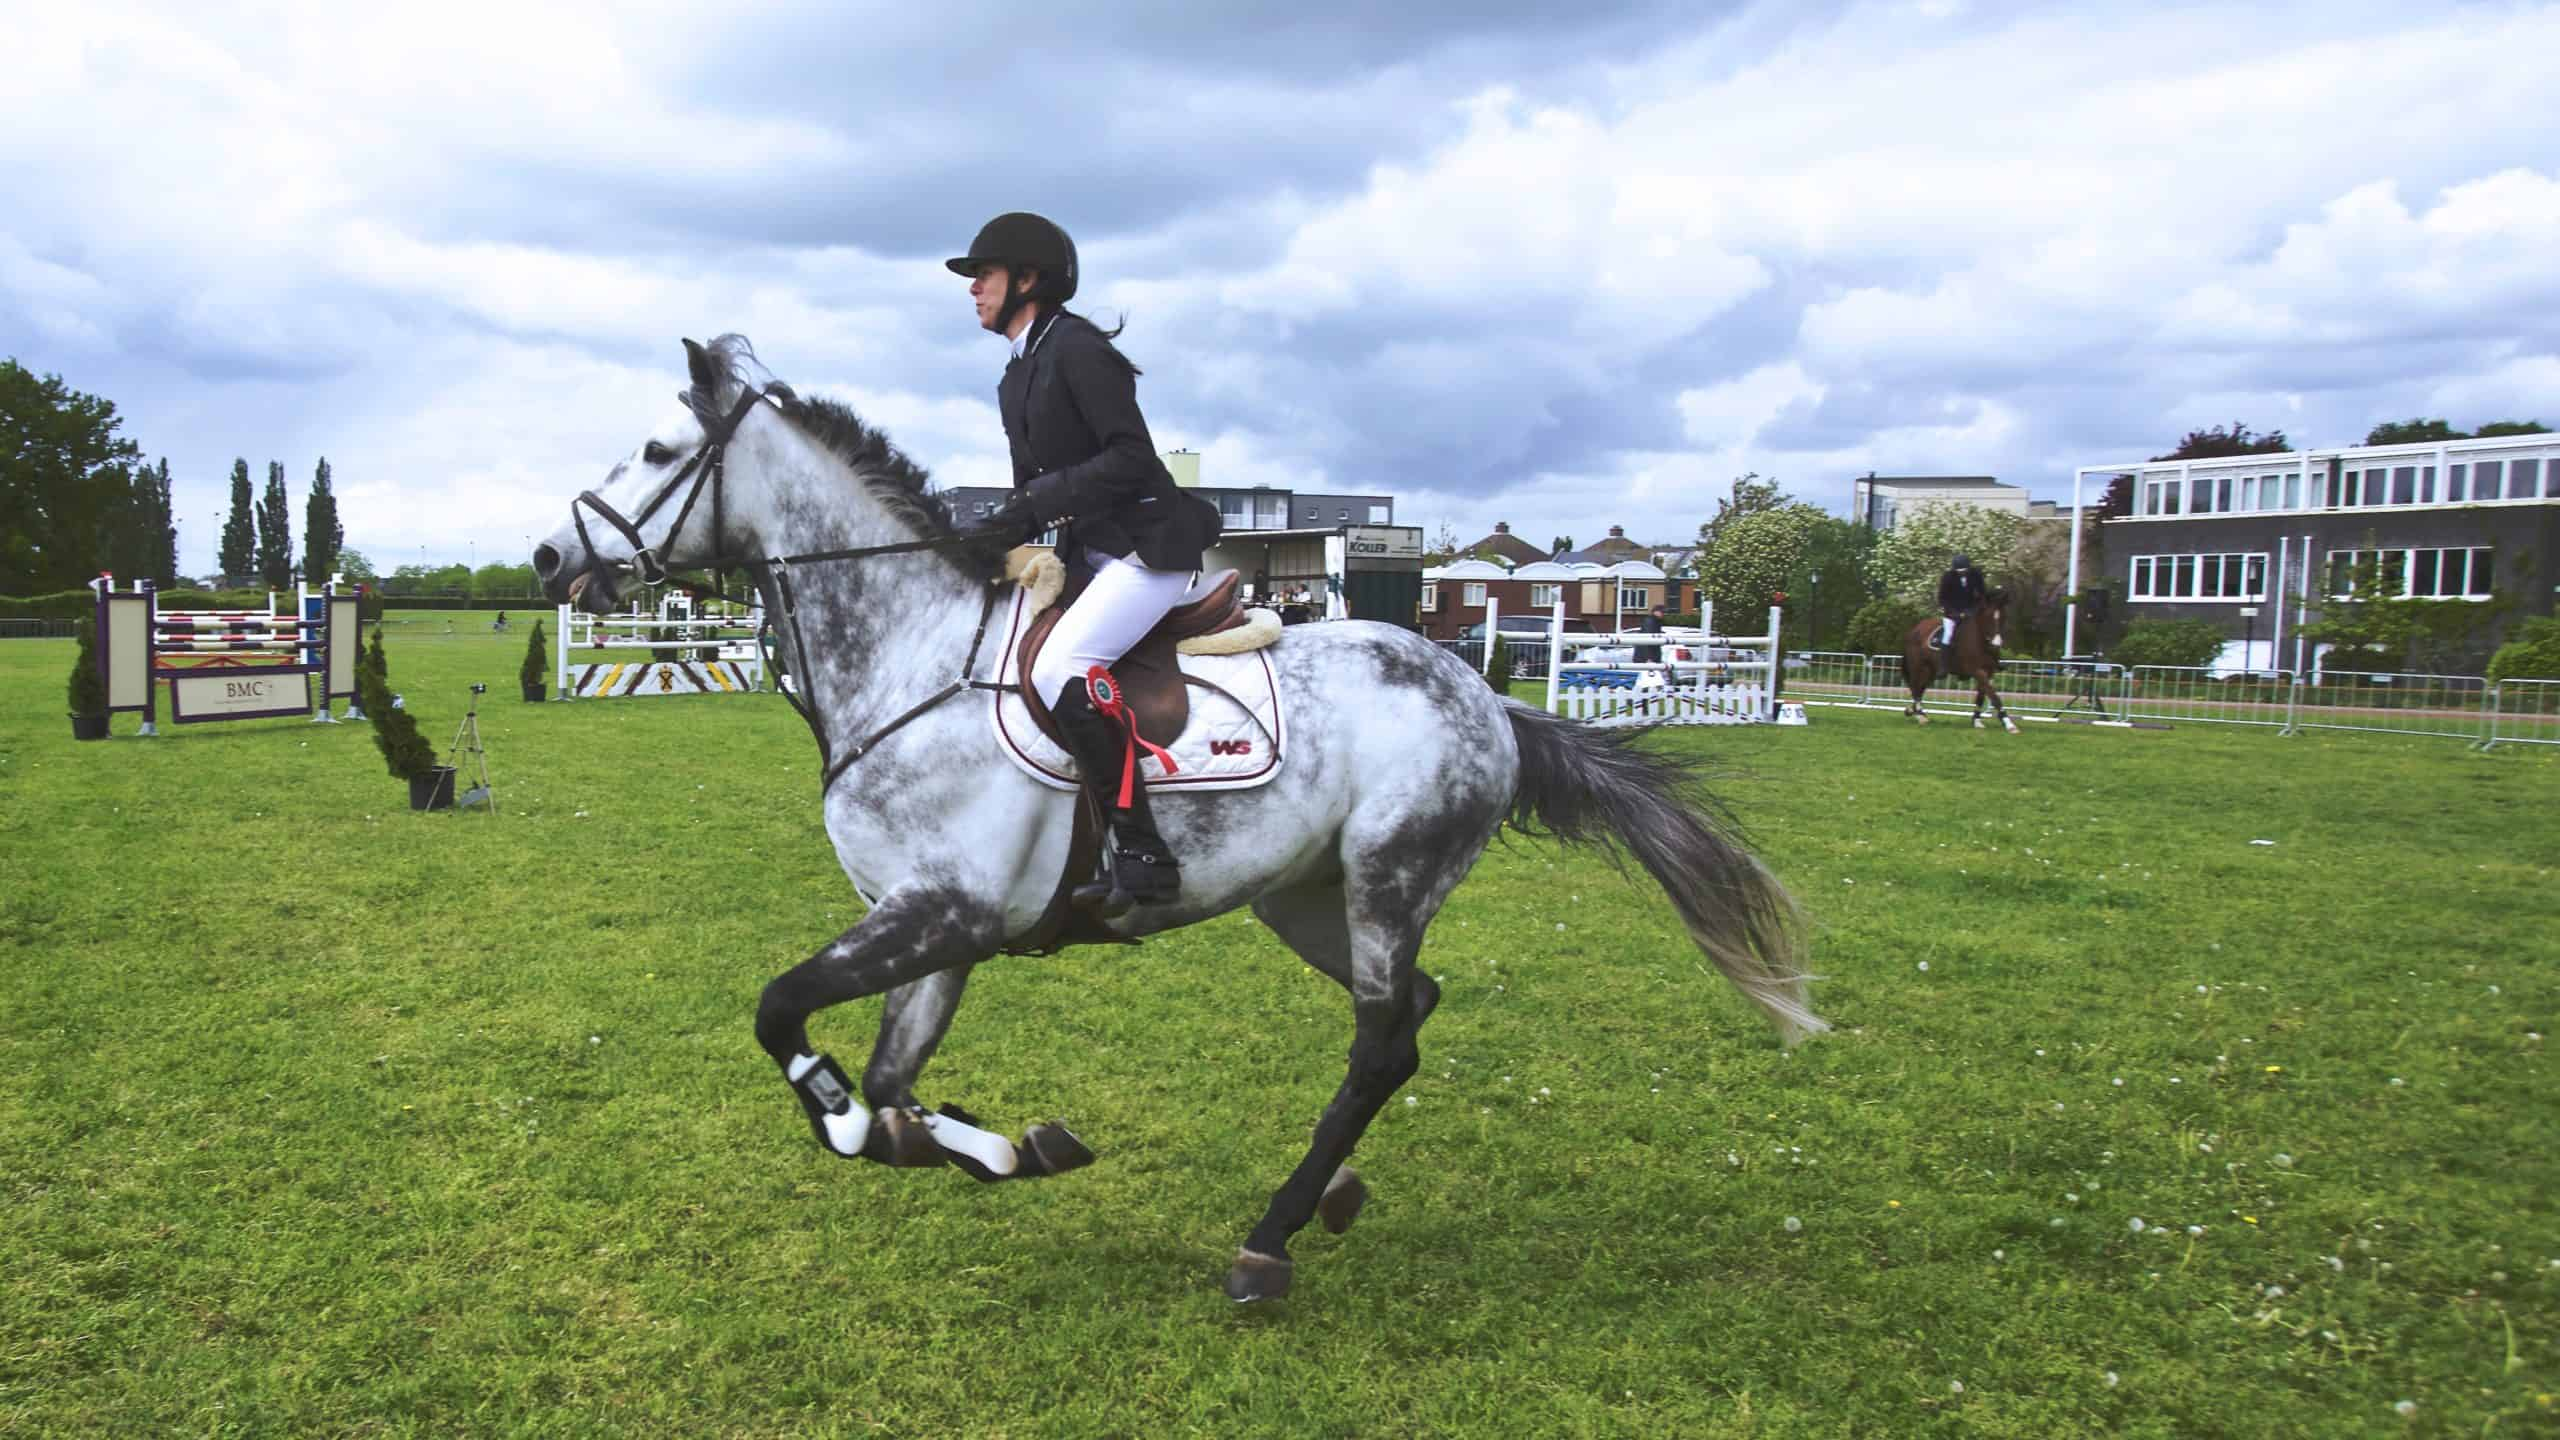 Tips for Handling Your Amazing Horse